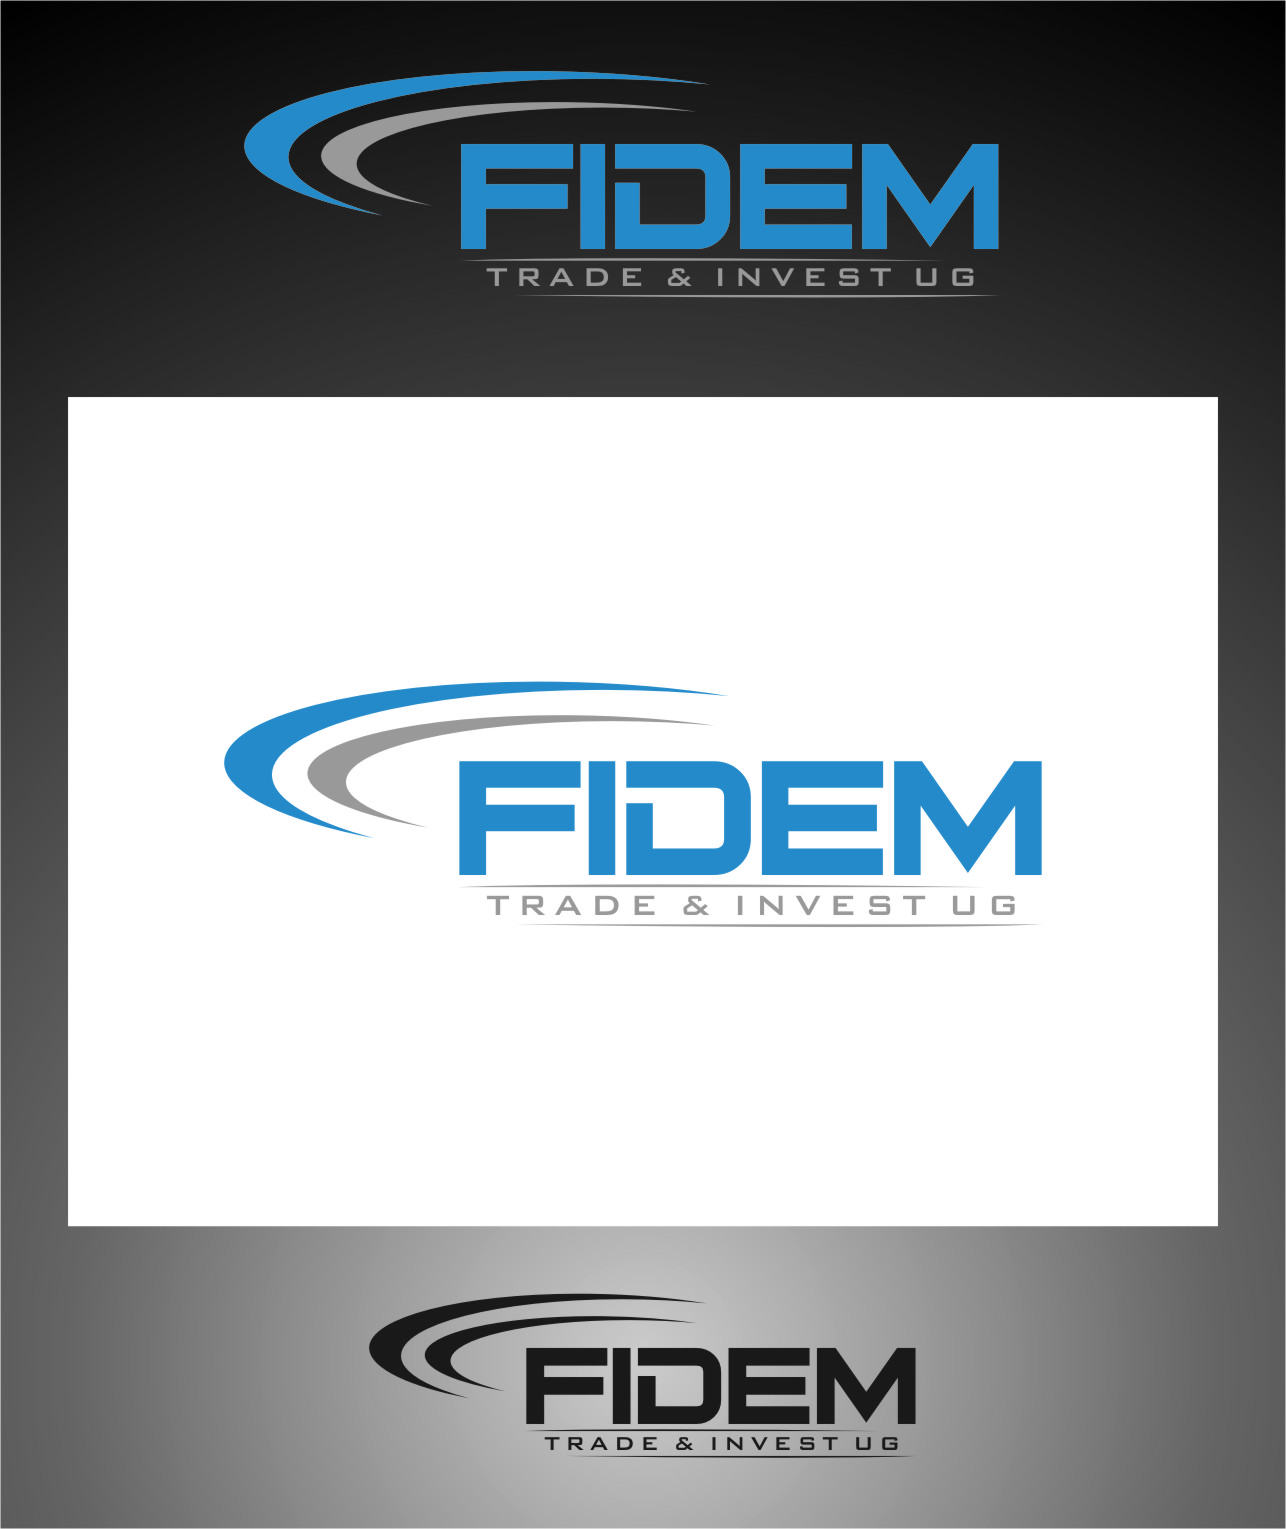 Logo Design by RasYa Muhammad Athaya - Entry No. 357 in the Logo Design Contest Professional Logo Design for FIDEM Trade & Invest UG.